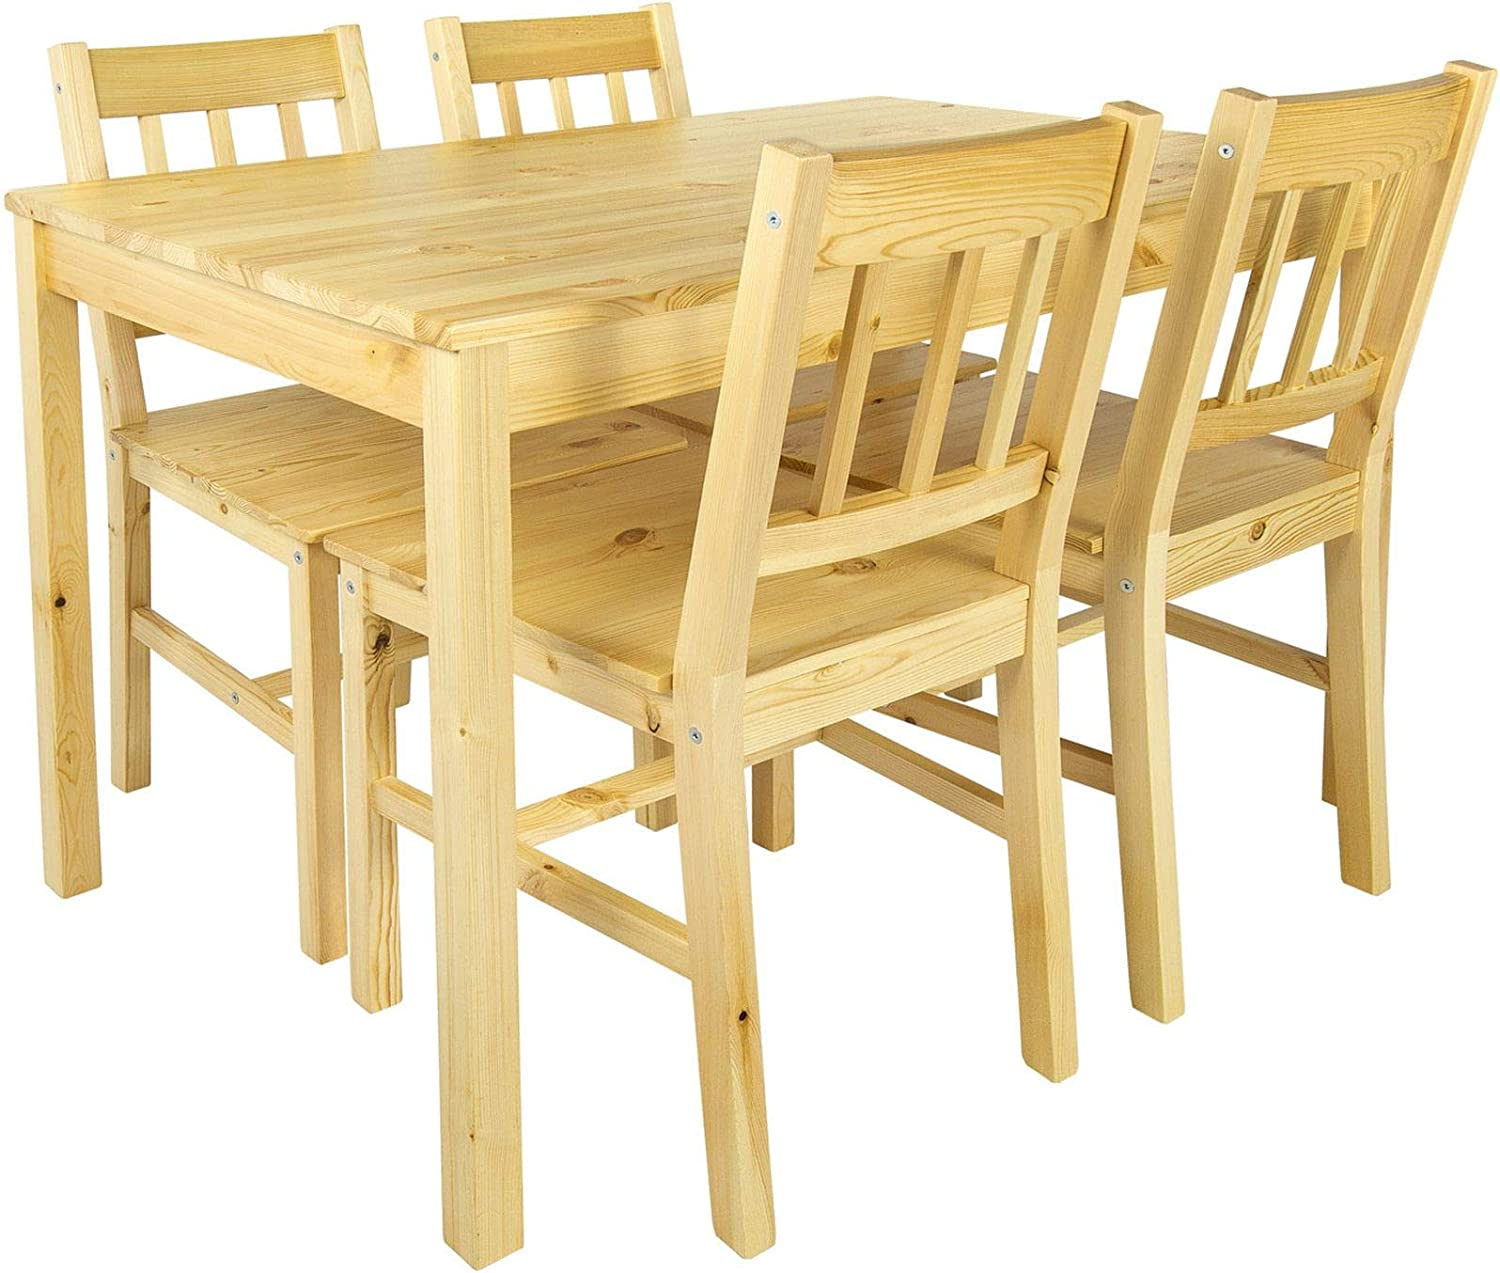 Merkell Leomark Beautiful Dining Set Natural Pine Table And 4 Chairs Pine Dining Table Natural Wood Dining Room Group For Kitchen Complete Wooden Ess Set Dining Room Set For 4